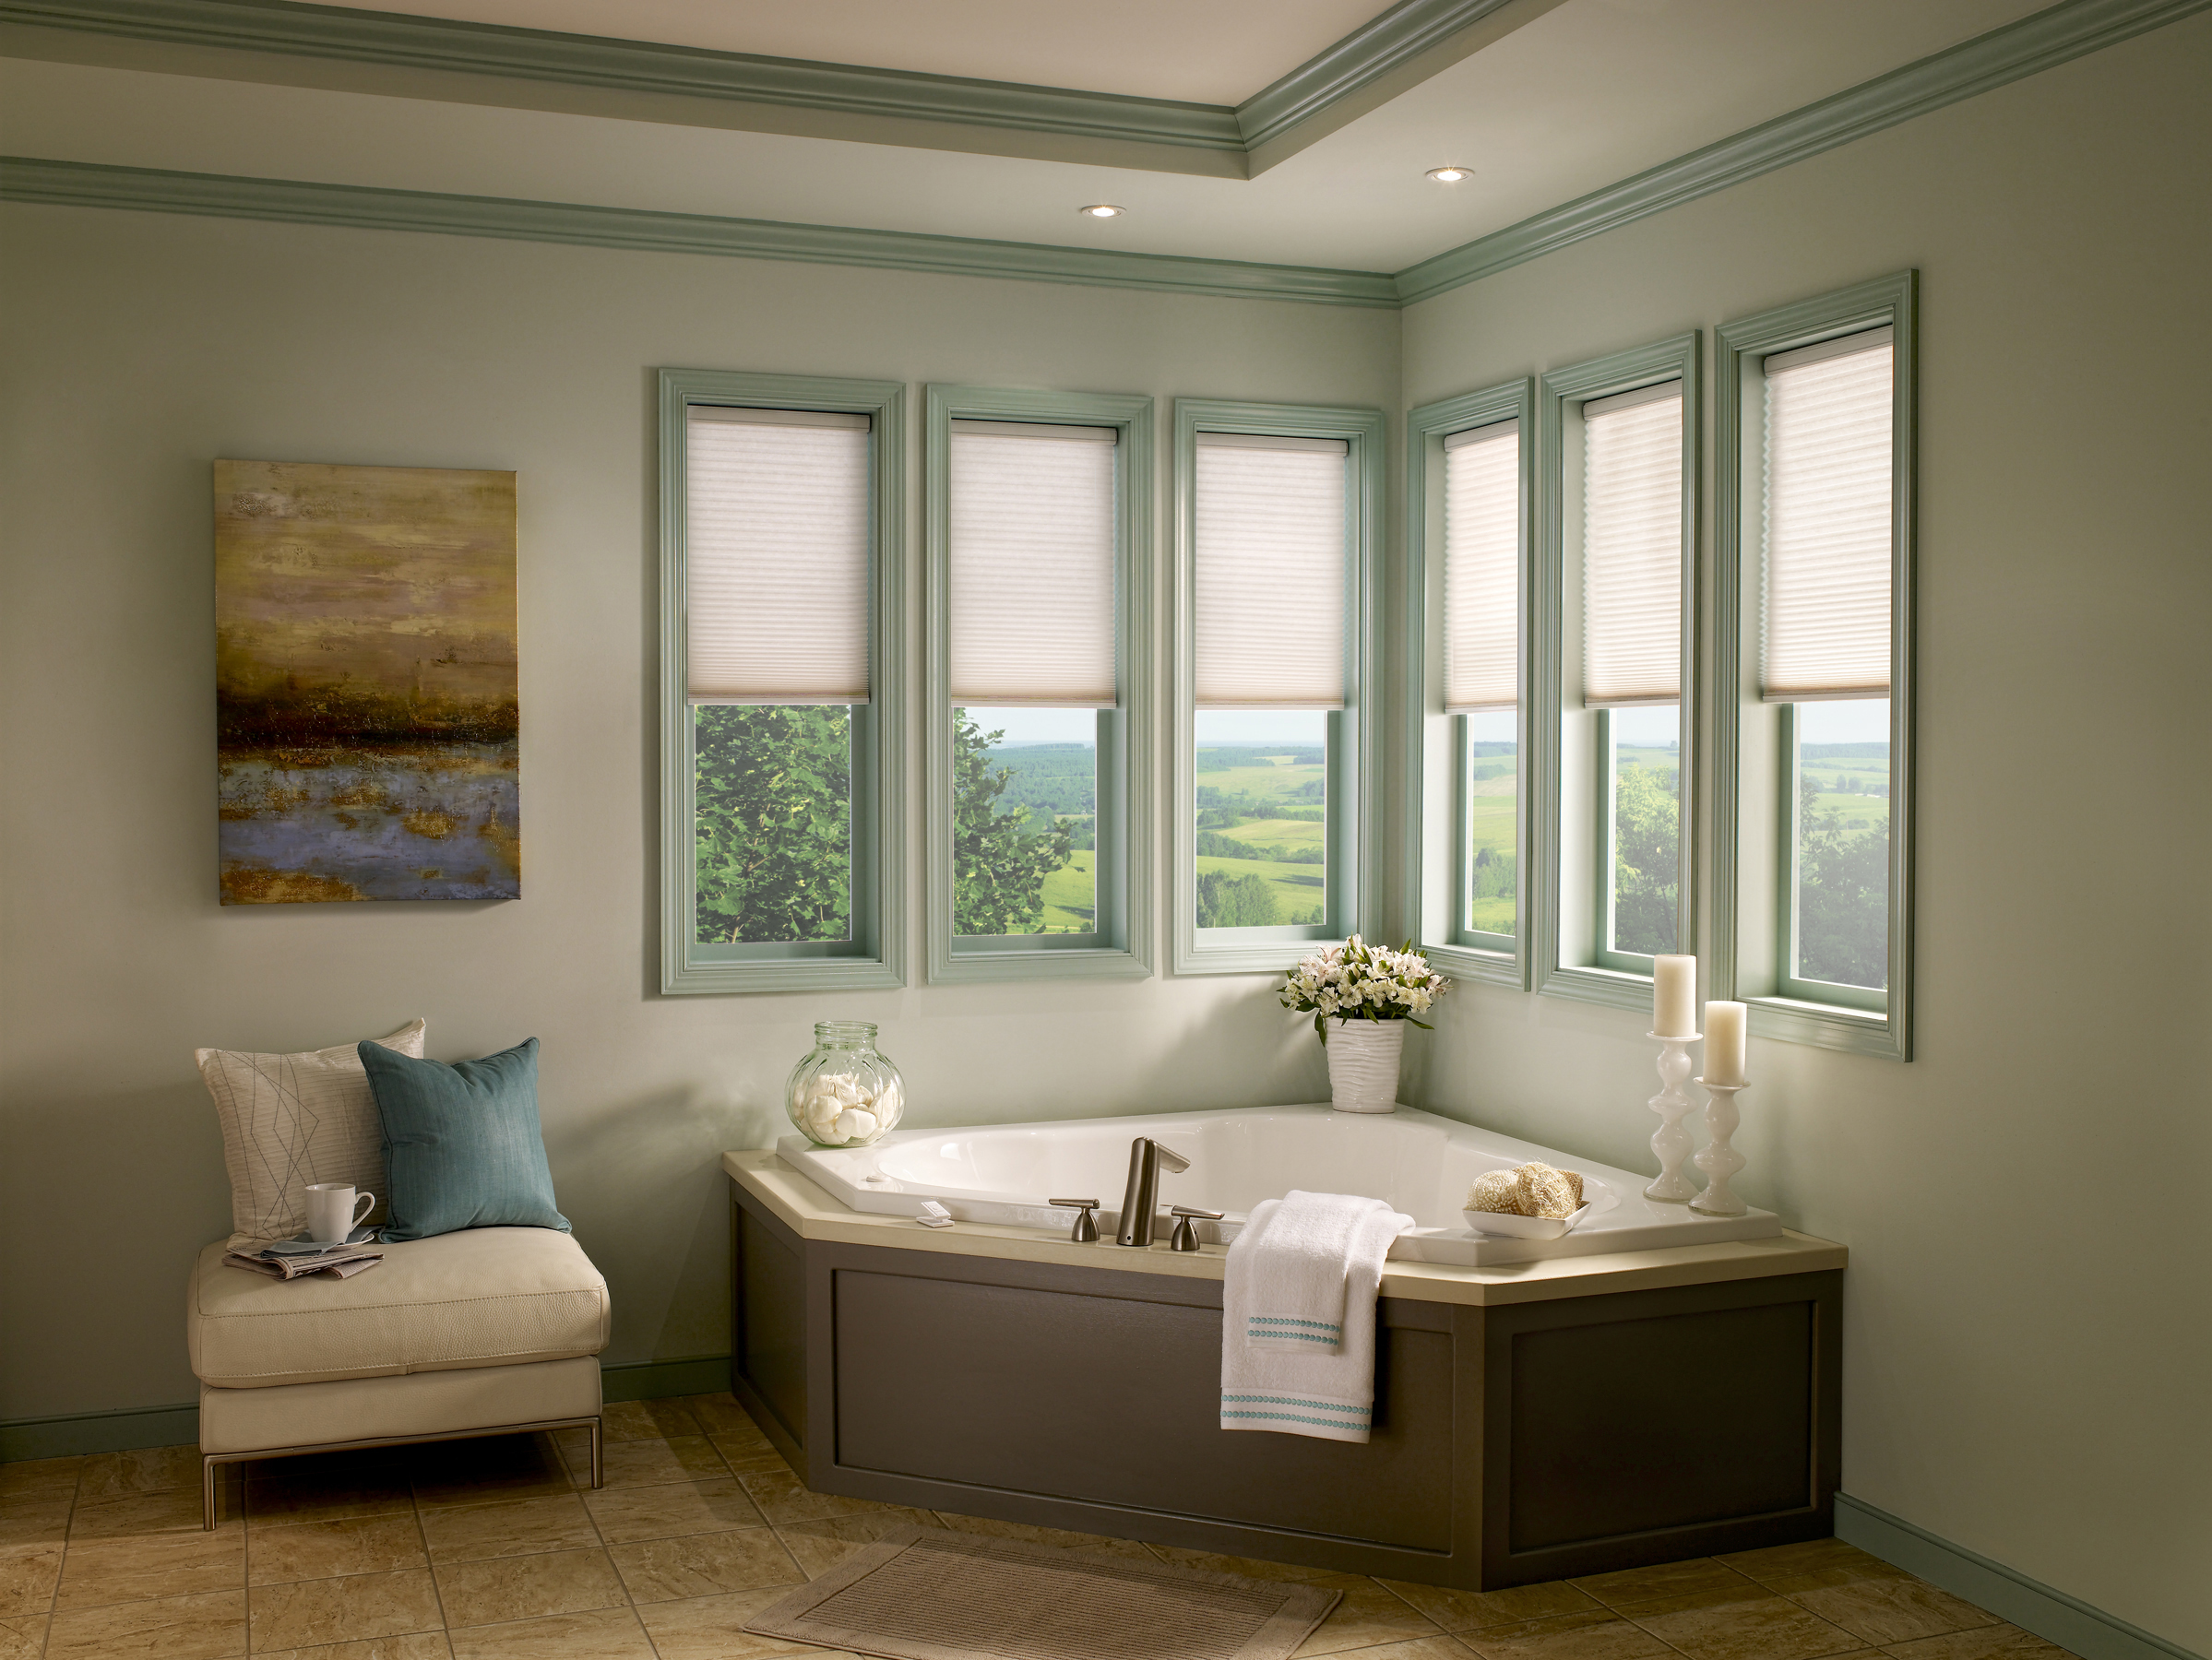 How to Pick the Right Window Treatment